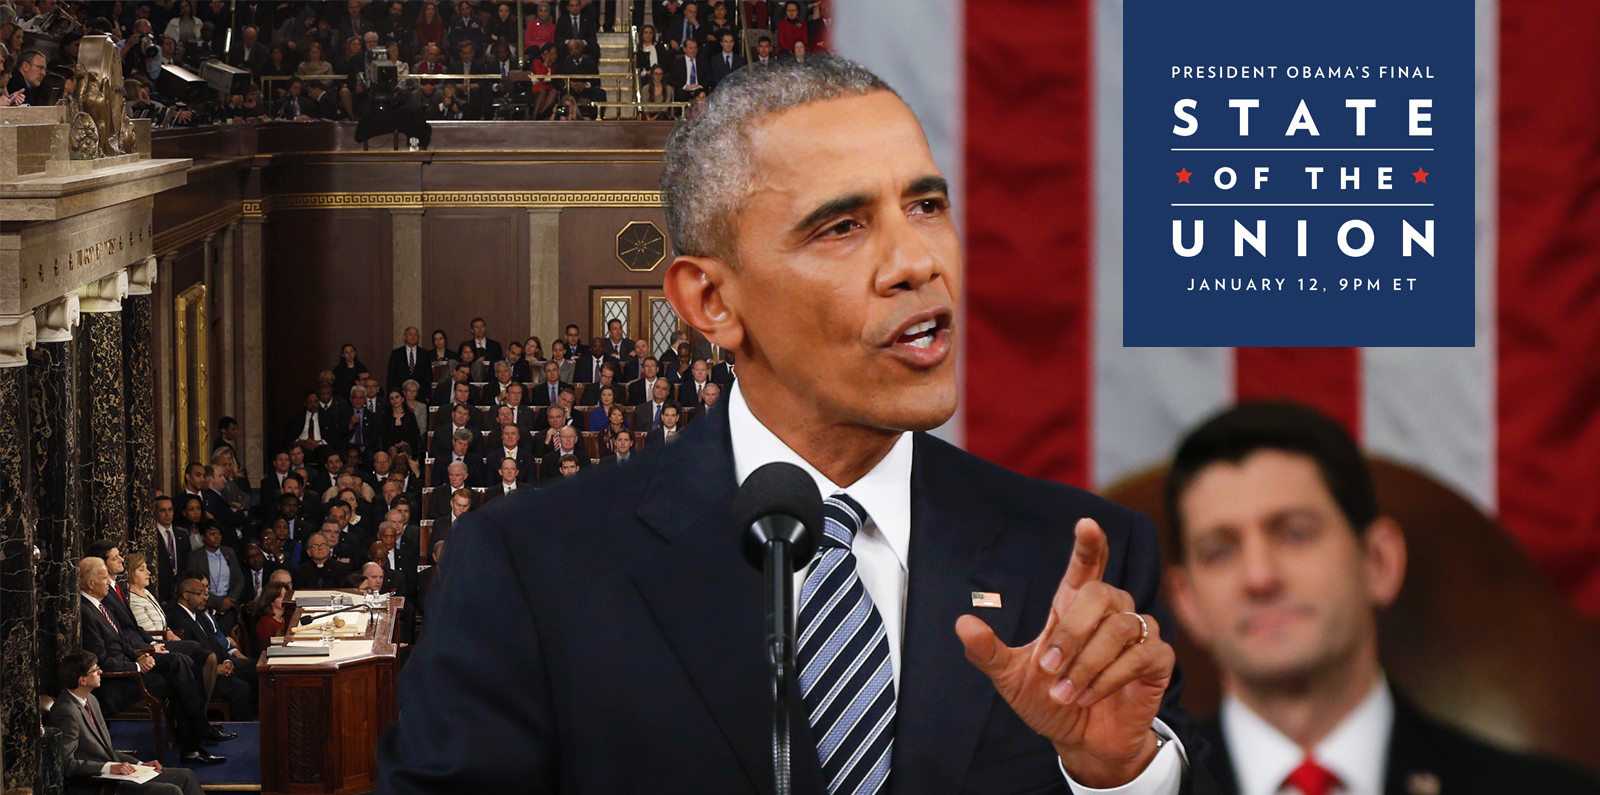 "Episode 73: The 2016 State of the Union<a href=""http://www.strideandsaunter.com/new-blog/2016/1/27/episode-73-the-2016-state-of-the-union"">Listen →</a></p>"